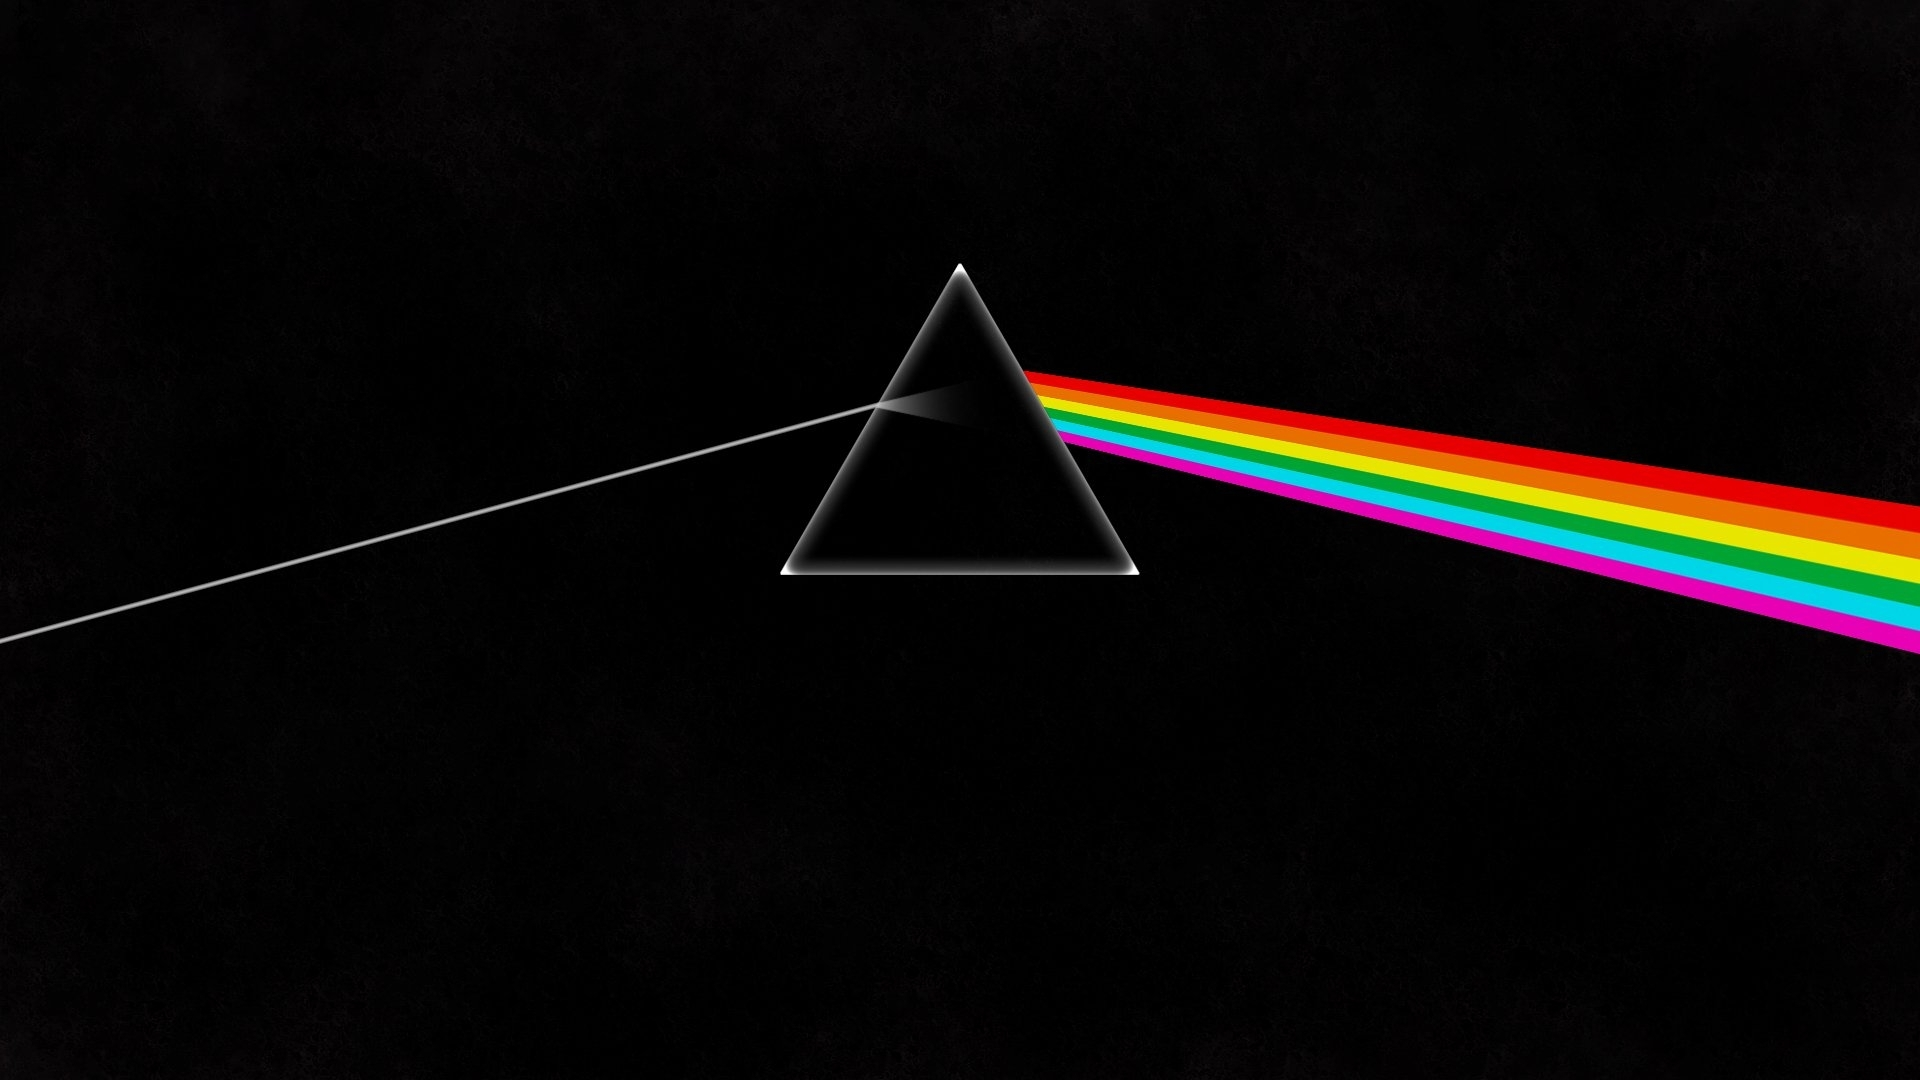 10 New Pink Floyd Dark Side Of The Moon Wallpaper FULL HD 1080p For PC Background